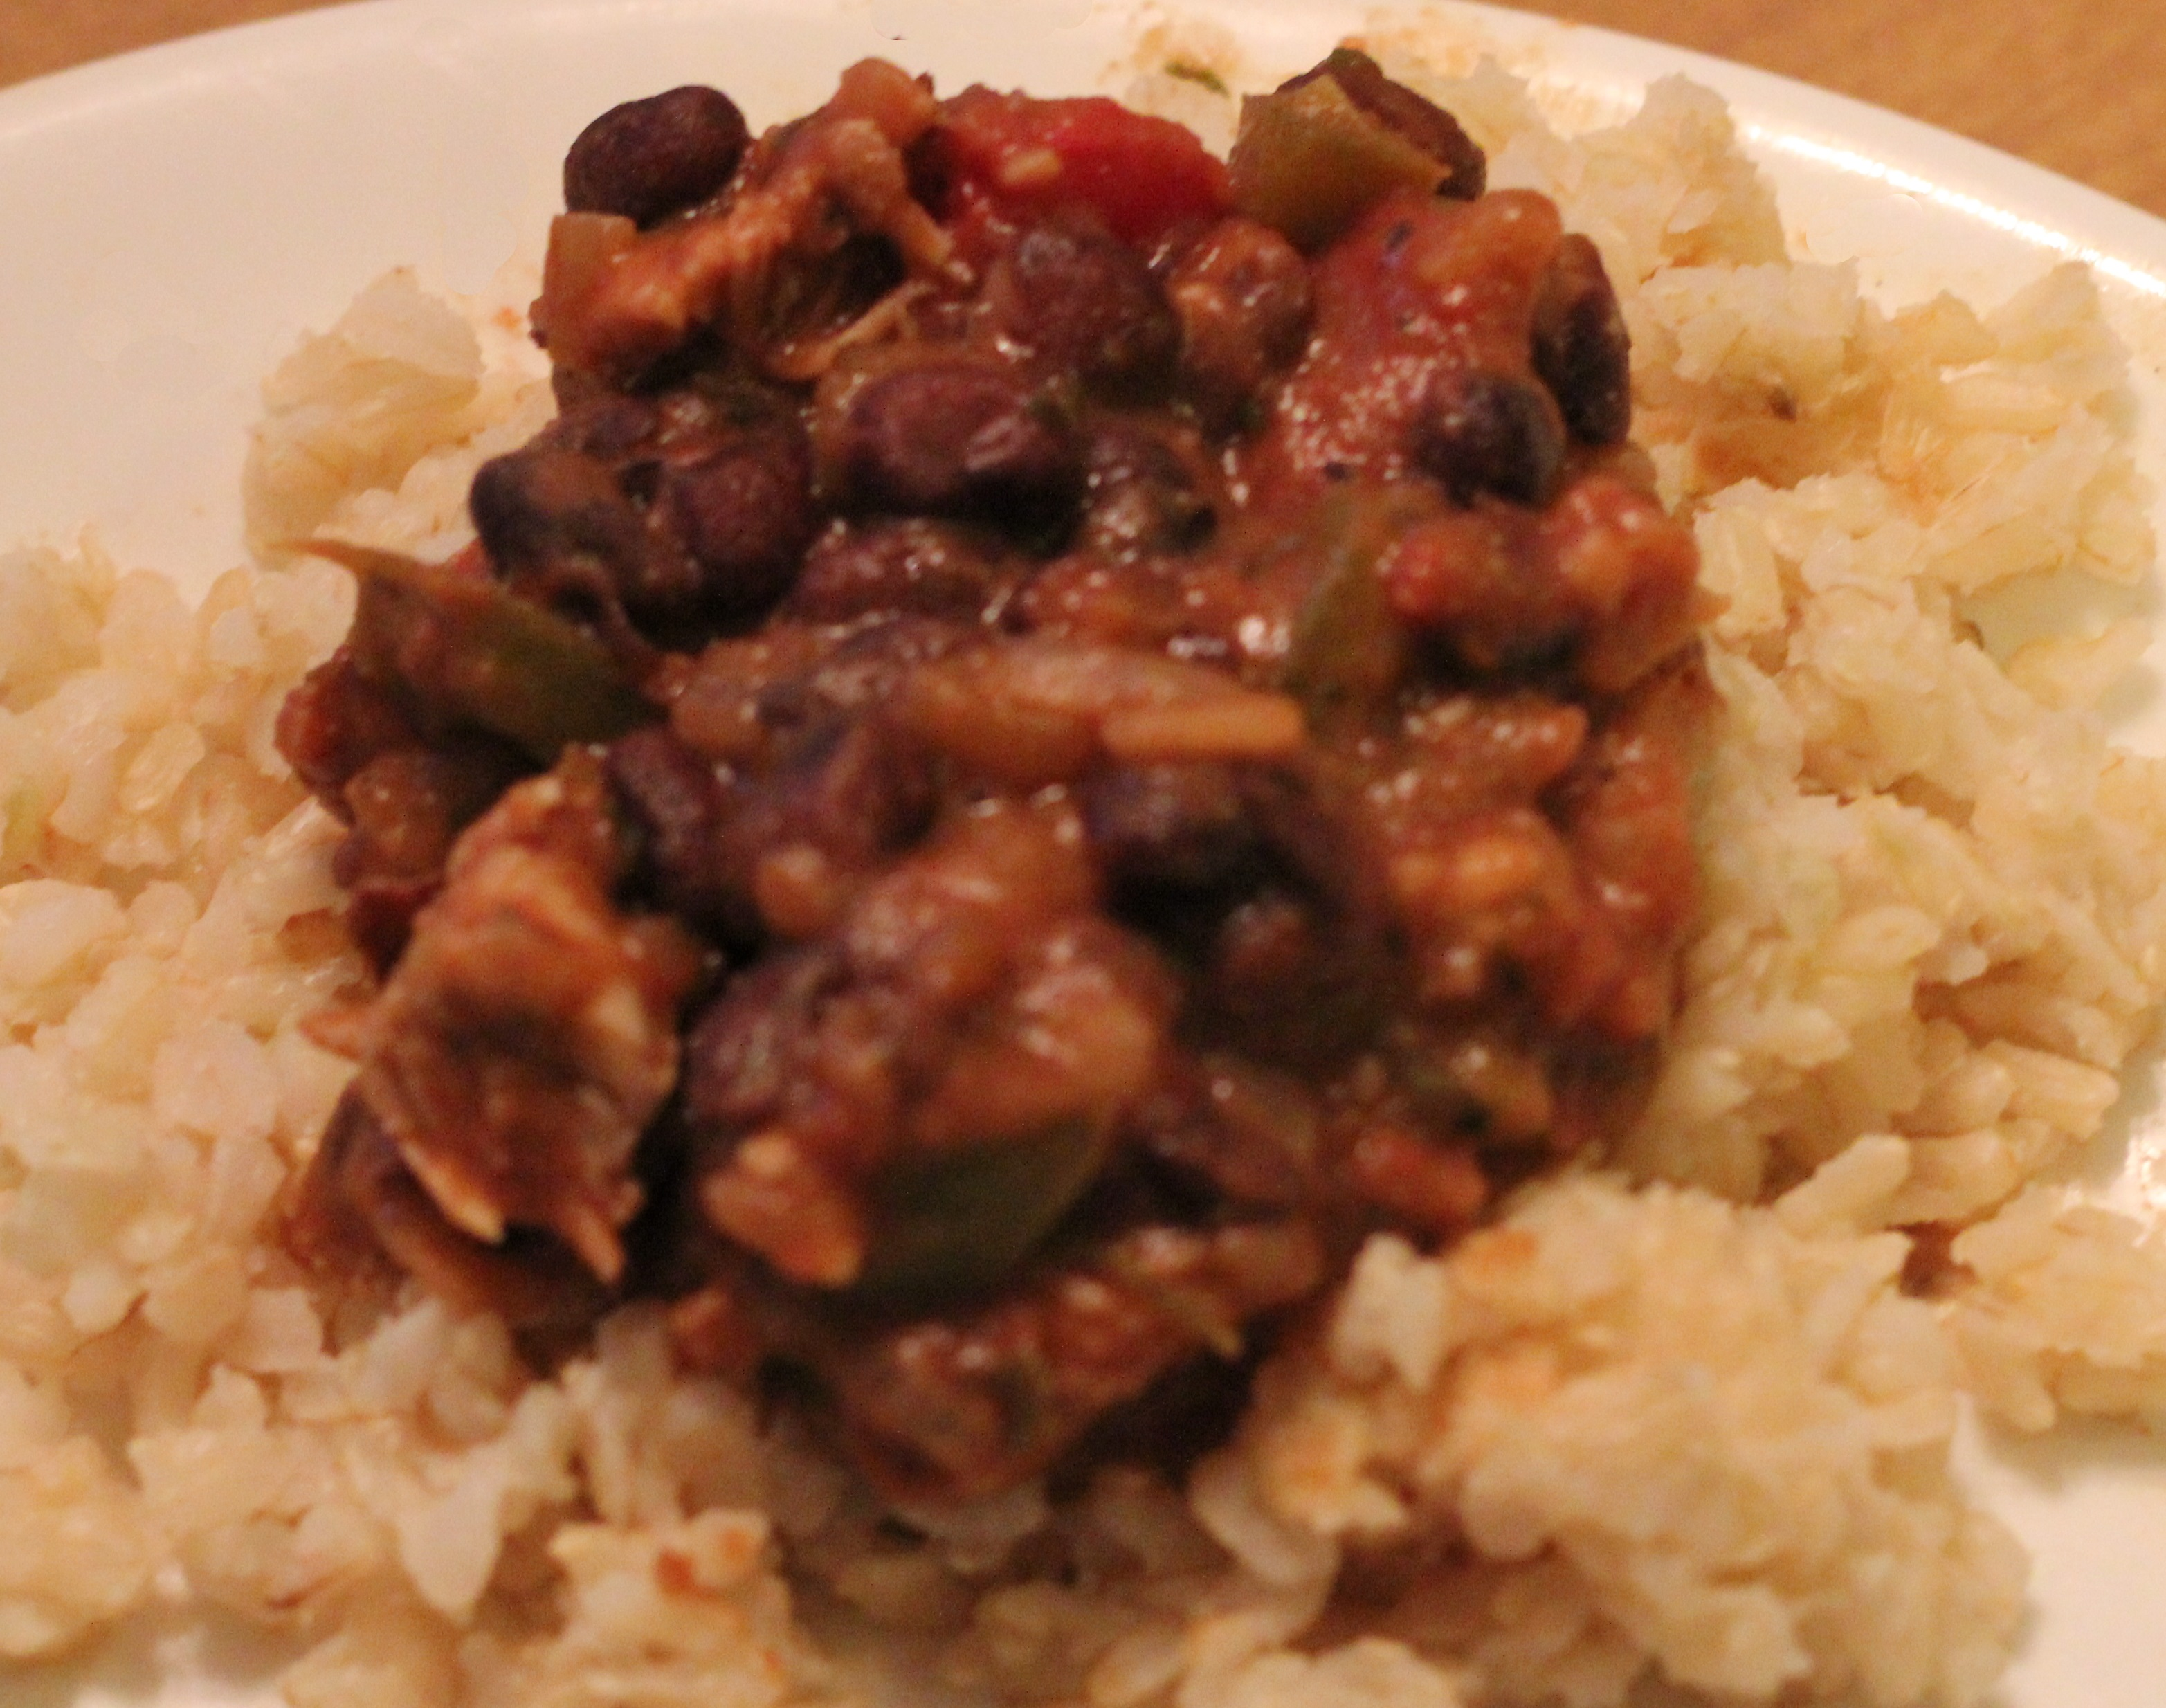 Brazilian style rice black beans recipe easy yummy latterday easy brazilian food this is my version of feijoada a popular brazilian dish i decided to try it out last night and it turned out really good forumfinder Image collections